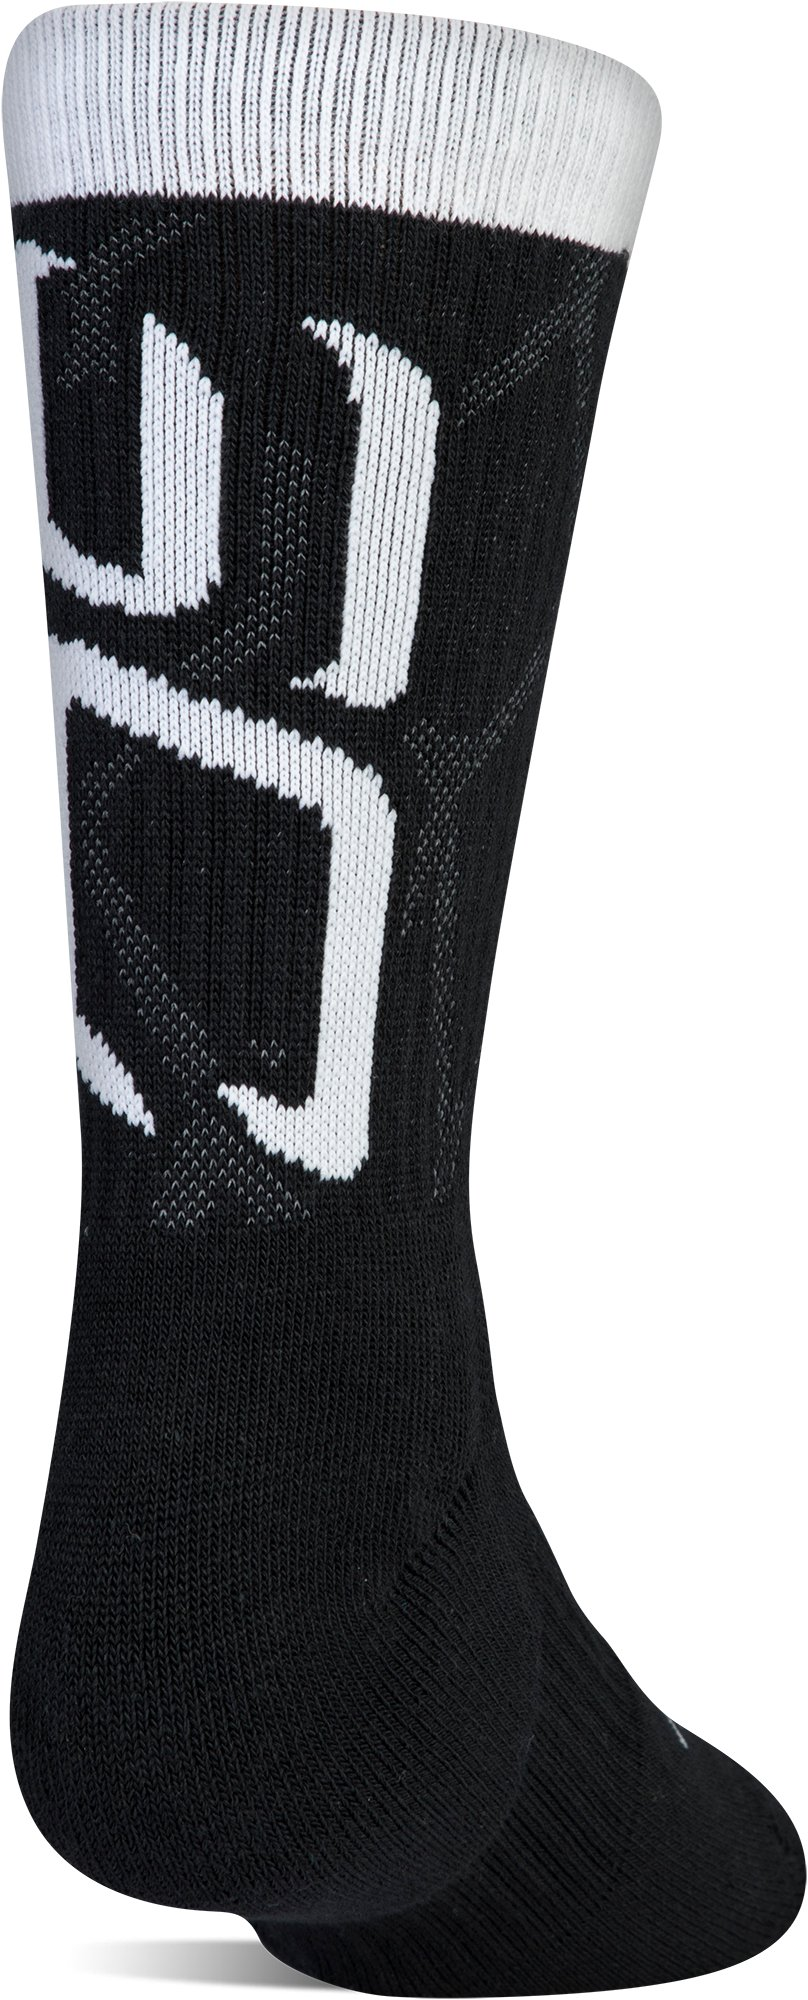 Boys SC30 Phenom 2.0 Crew Socks 3-Pack, Black ,